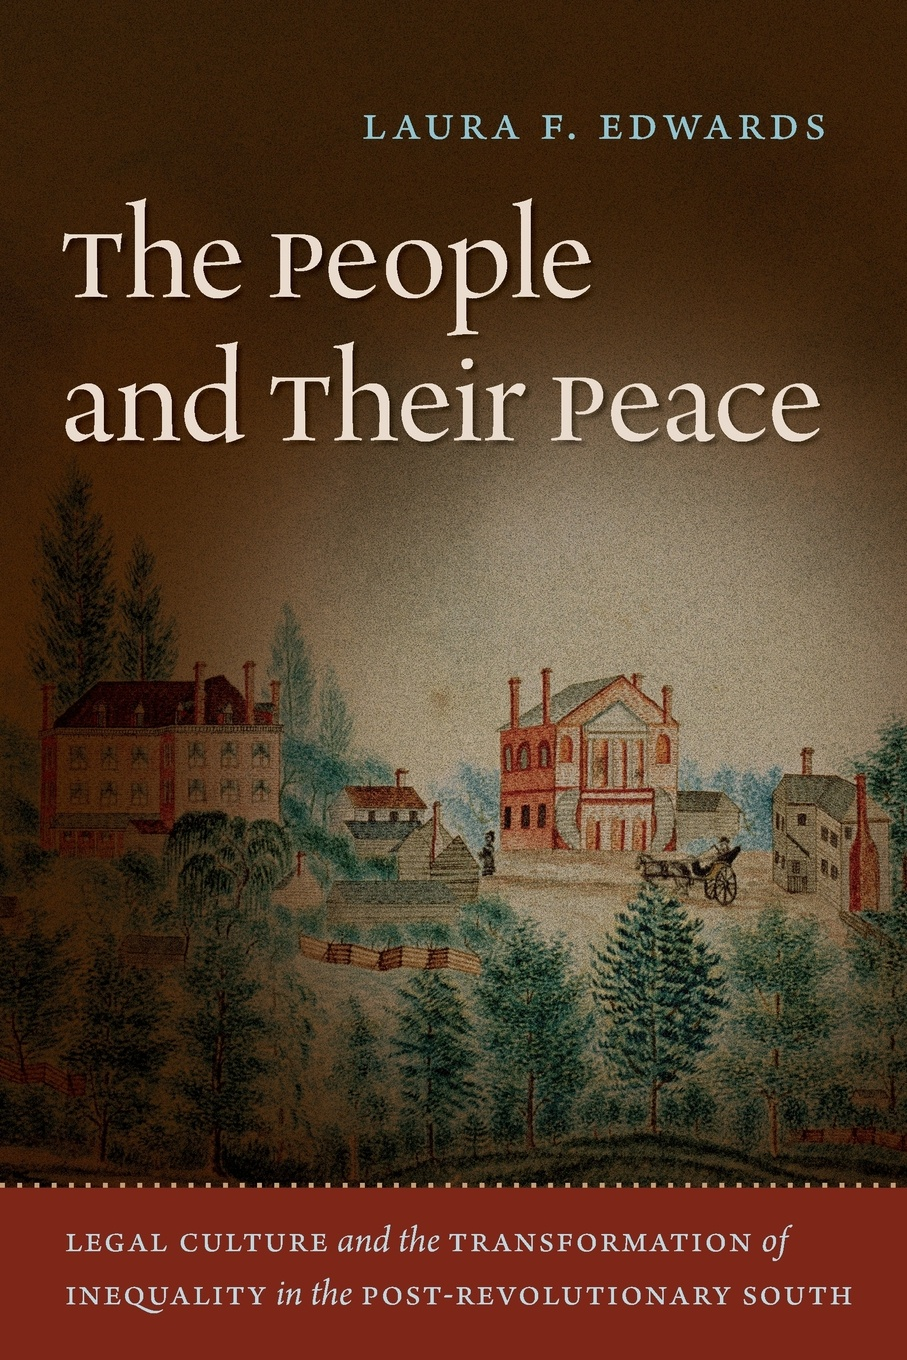 Laura F. Edwards The People and Their Peace